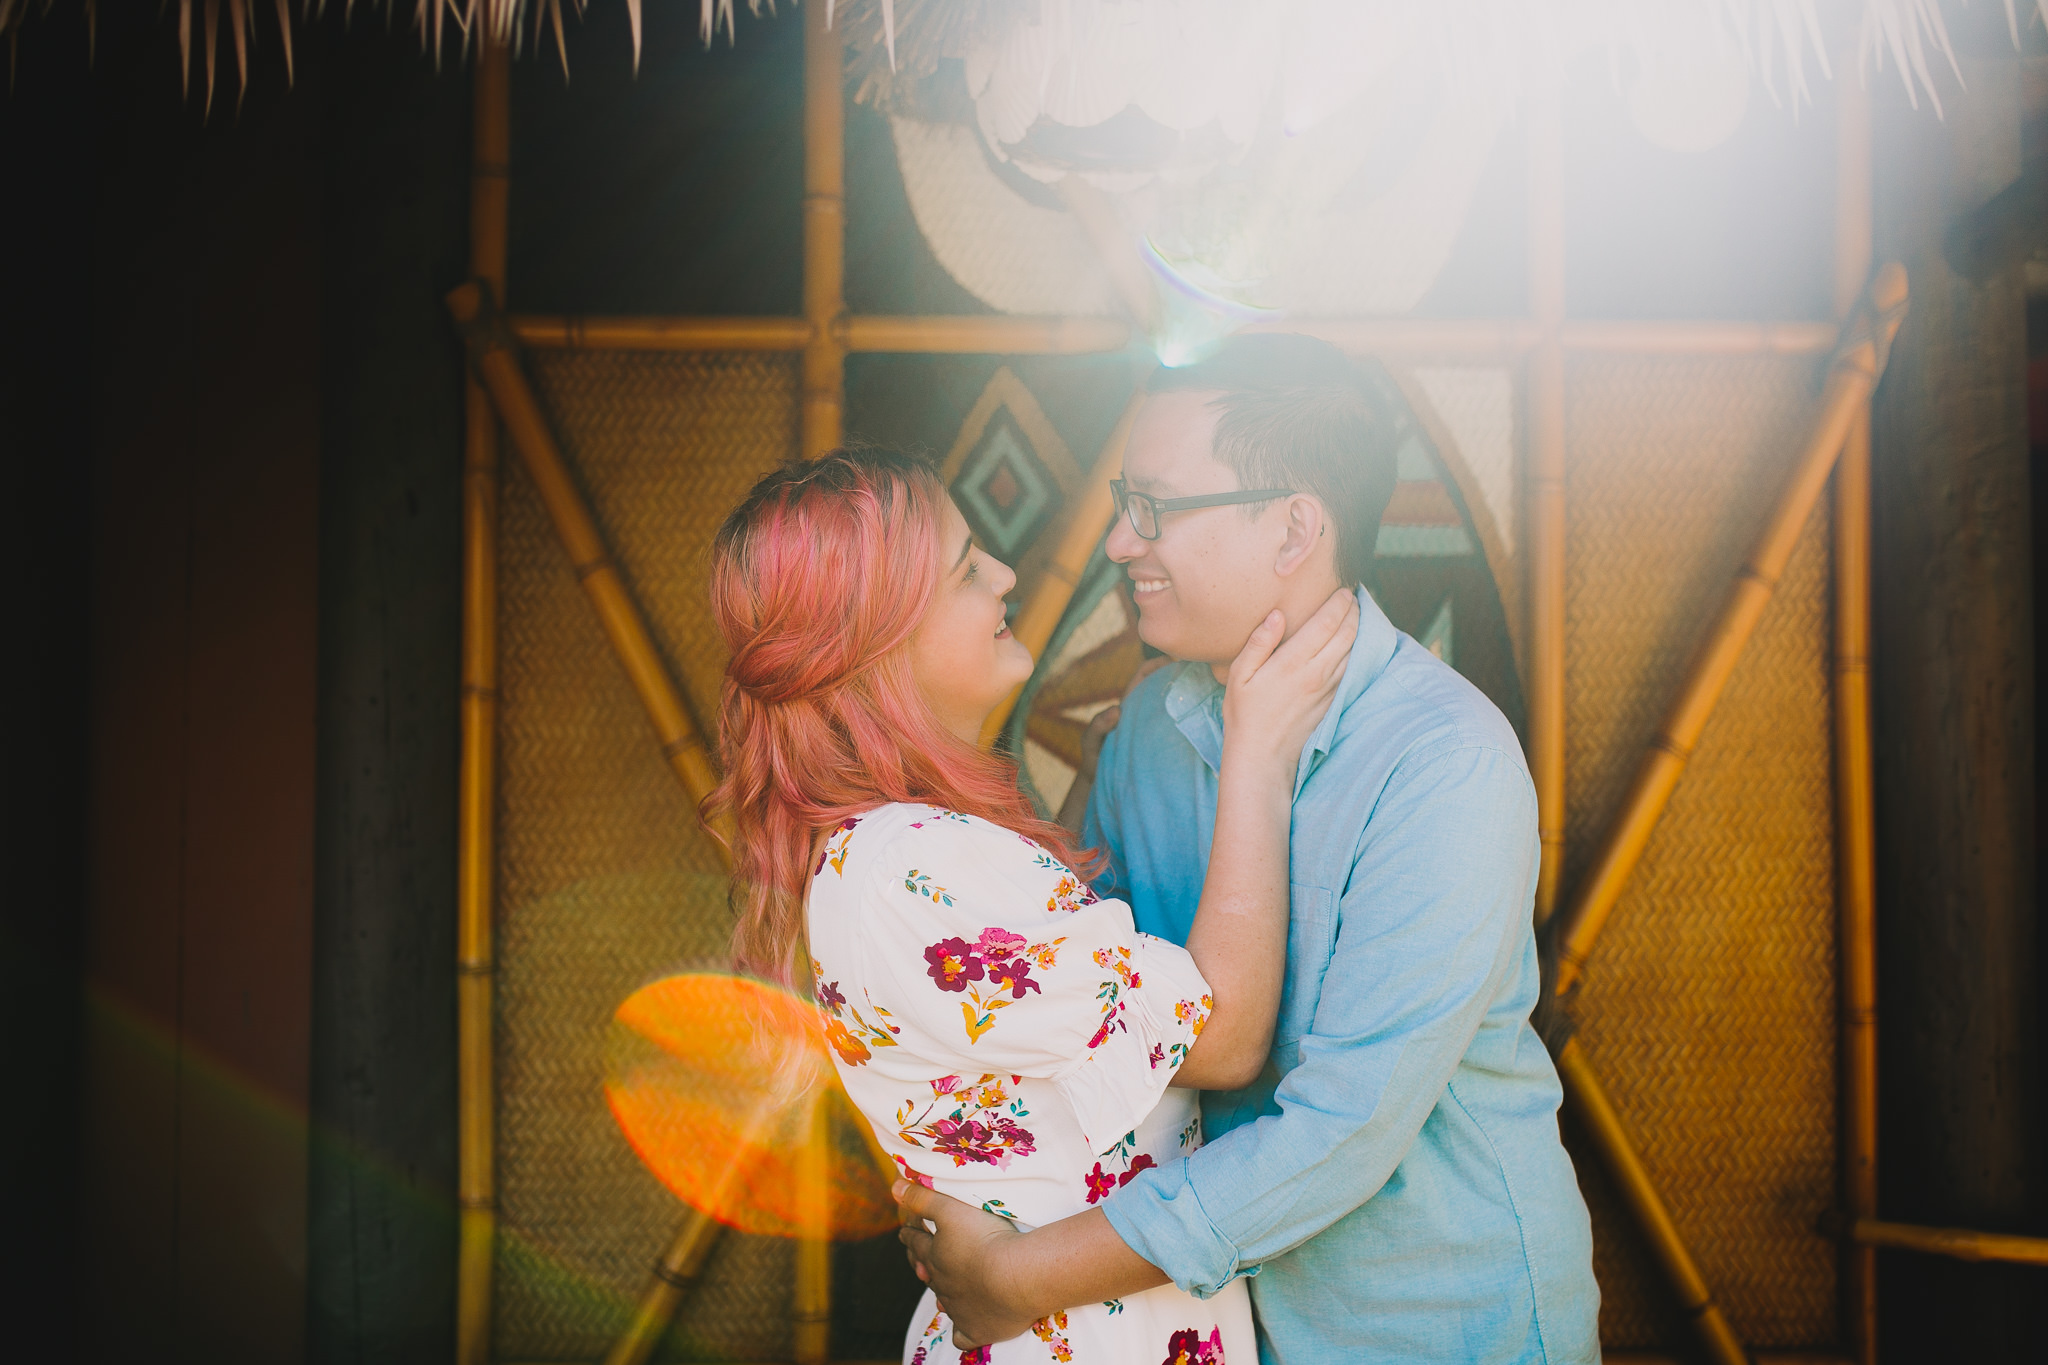 Archer Inspired Photography Disneyland Engagement Wedding Session Southern California Kayla and Kevin Lifestyle Documentary-55.jpg